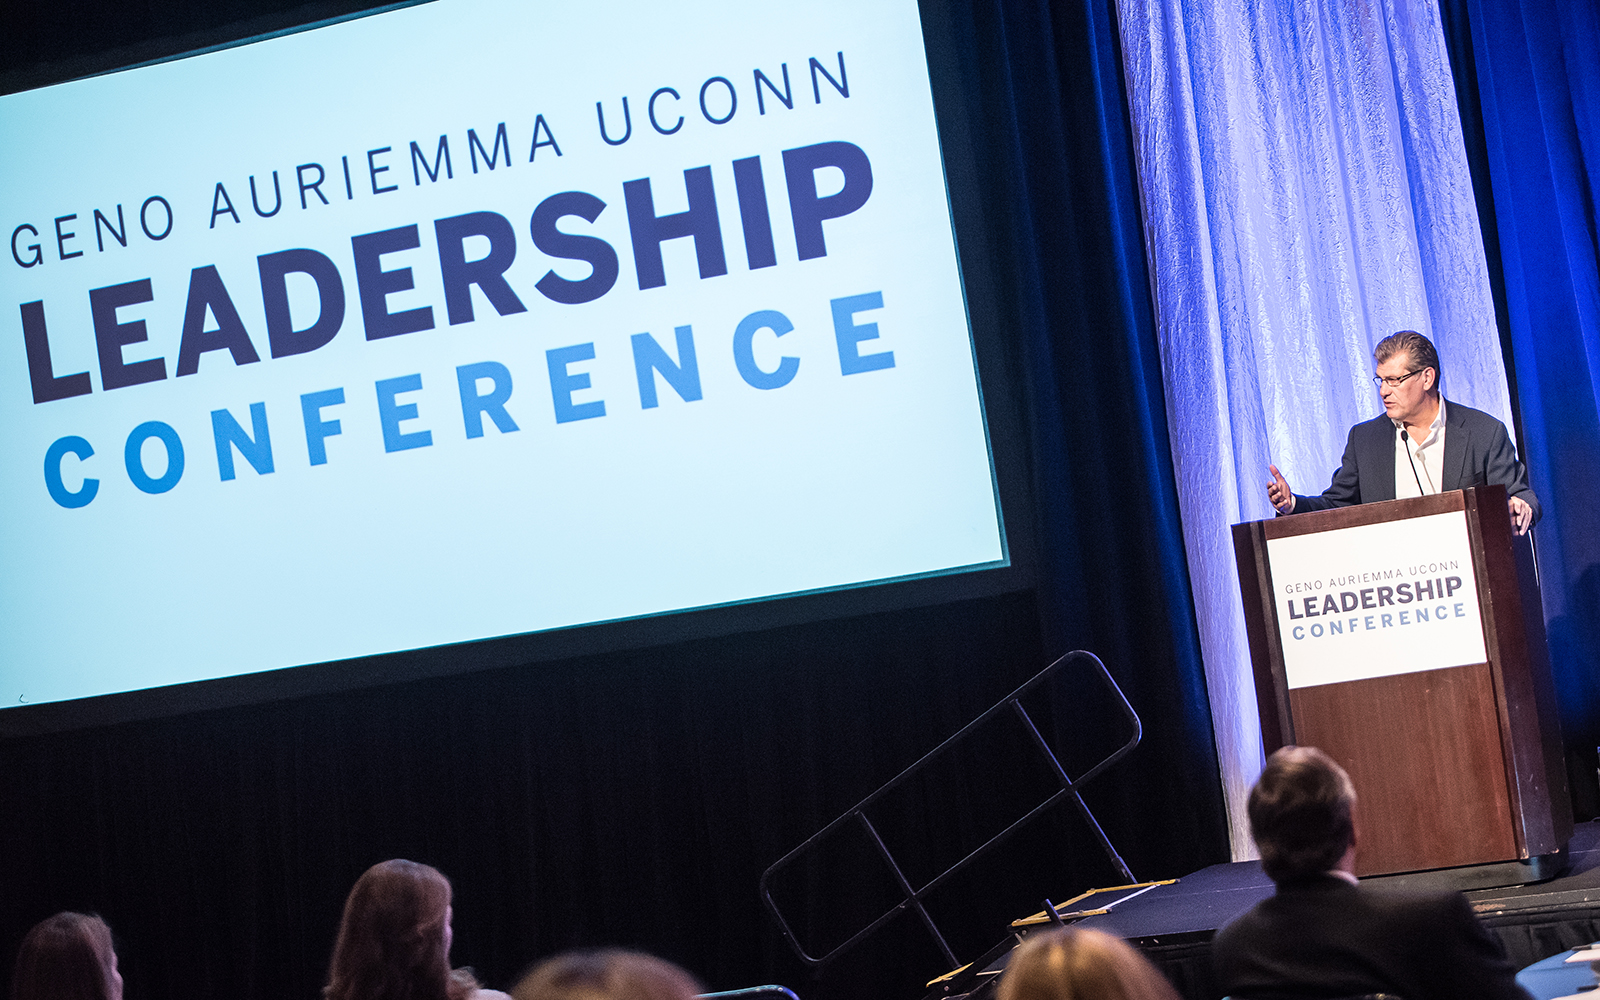 The third Geno Auriemma UConn Leadership Conference was held in October at Mohegan Sun, attracting some of the world's top executives from a vast variety of industries. (Nathan Oldham/UConn School of Business)